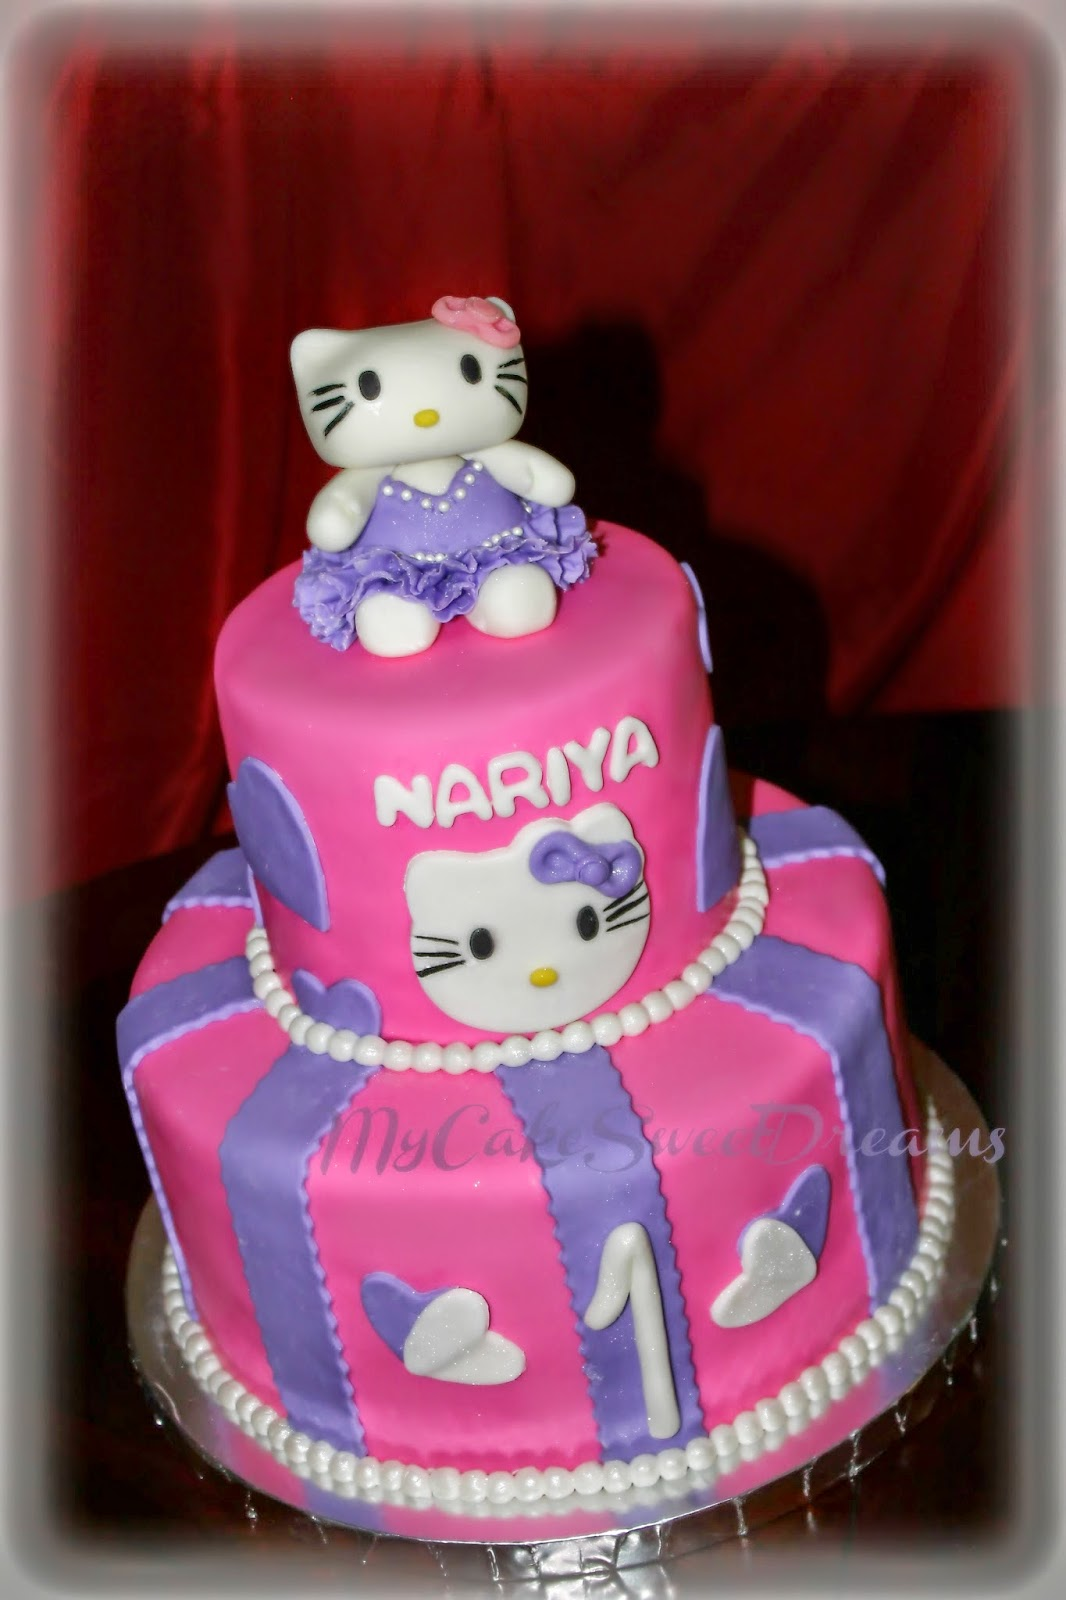 My Cake Sweet Dreams Hello Kitty First Birthday Cakes